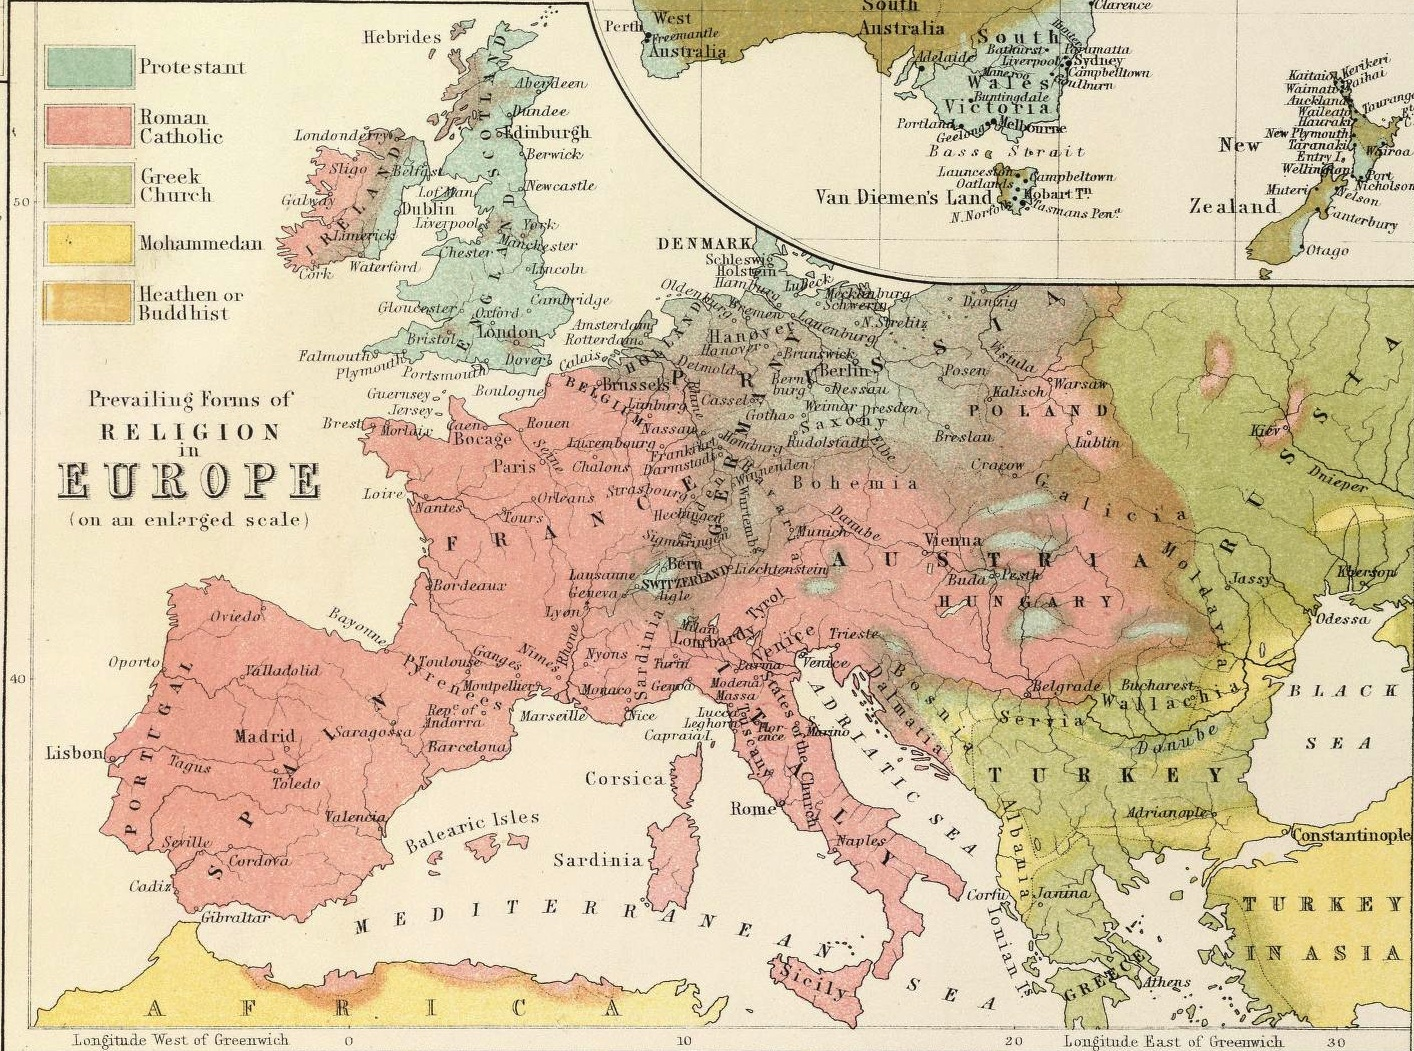 Religion map mid 19th century scottish map of world religion religionineuropedetail gumiabroncs Image collections